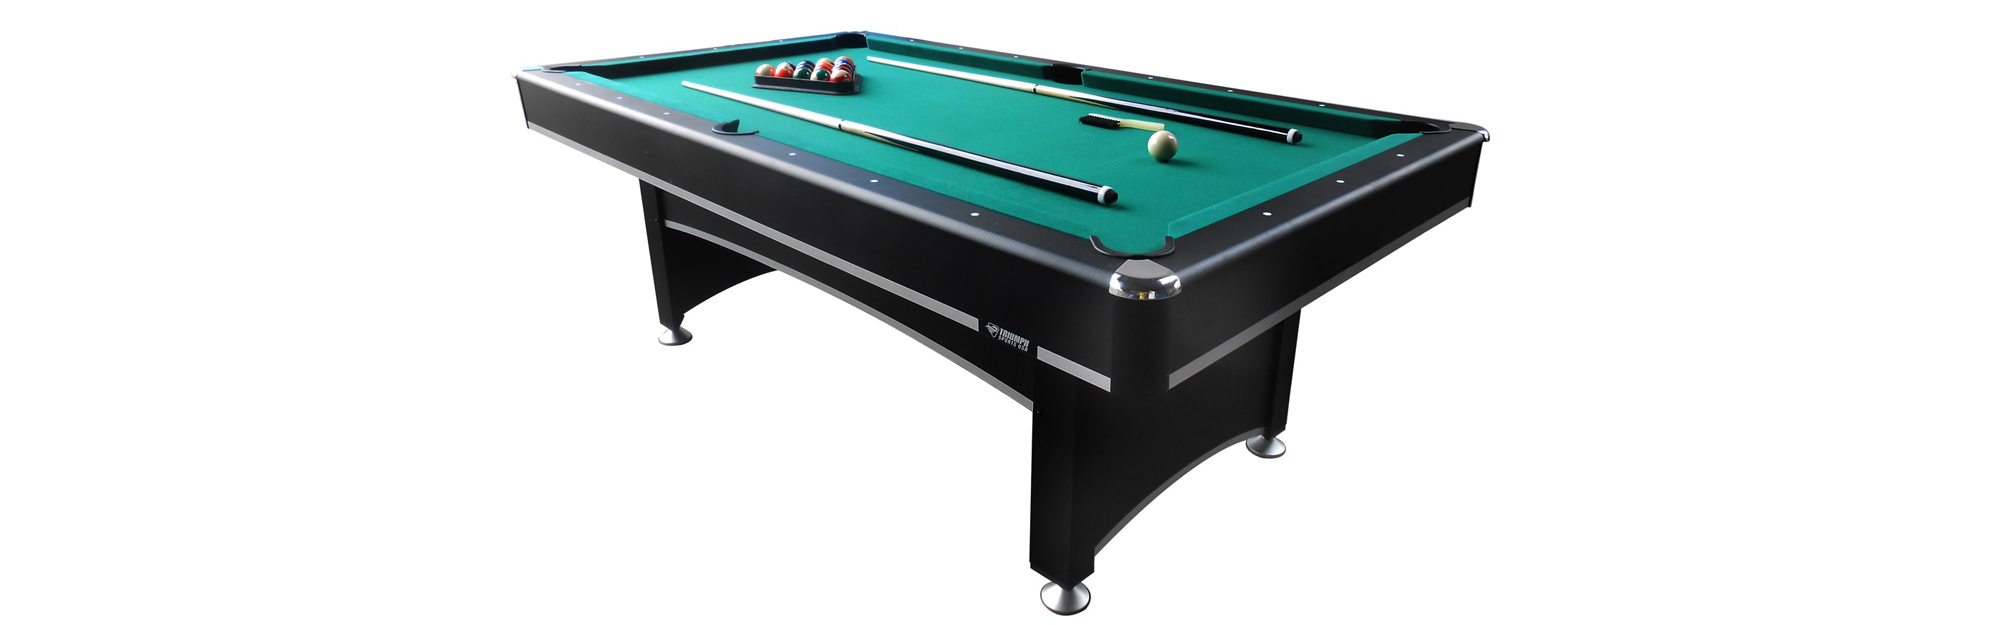 triumph-7-phoenix-pool-table-with-table-tennis-top_mainProductImage_FullSize